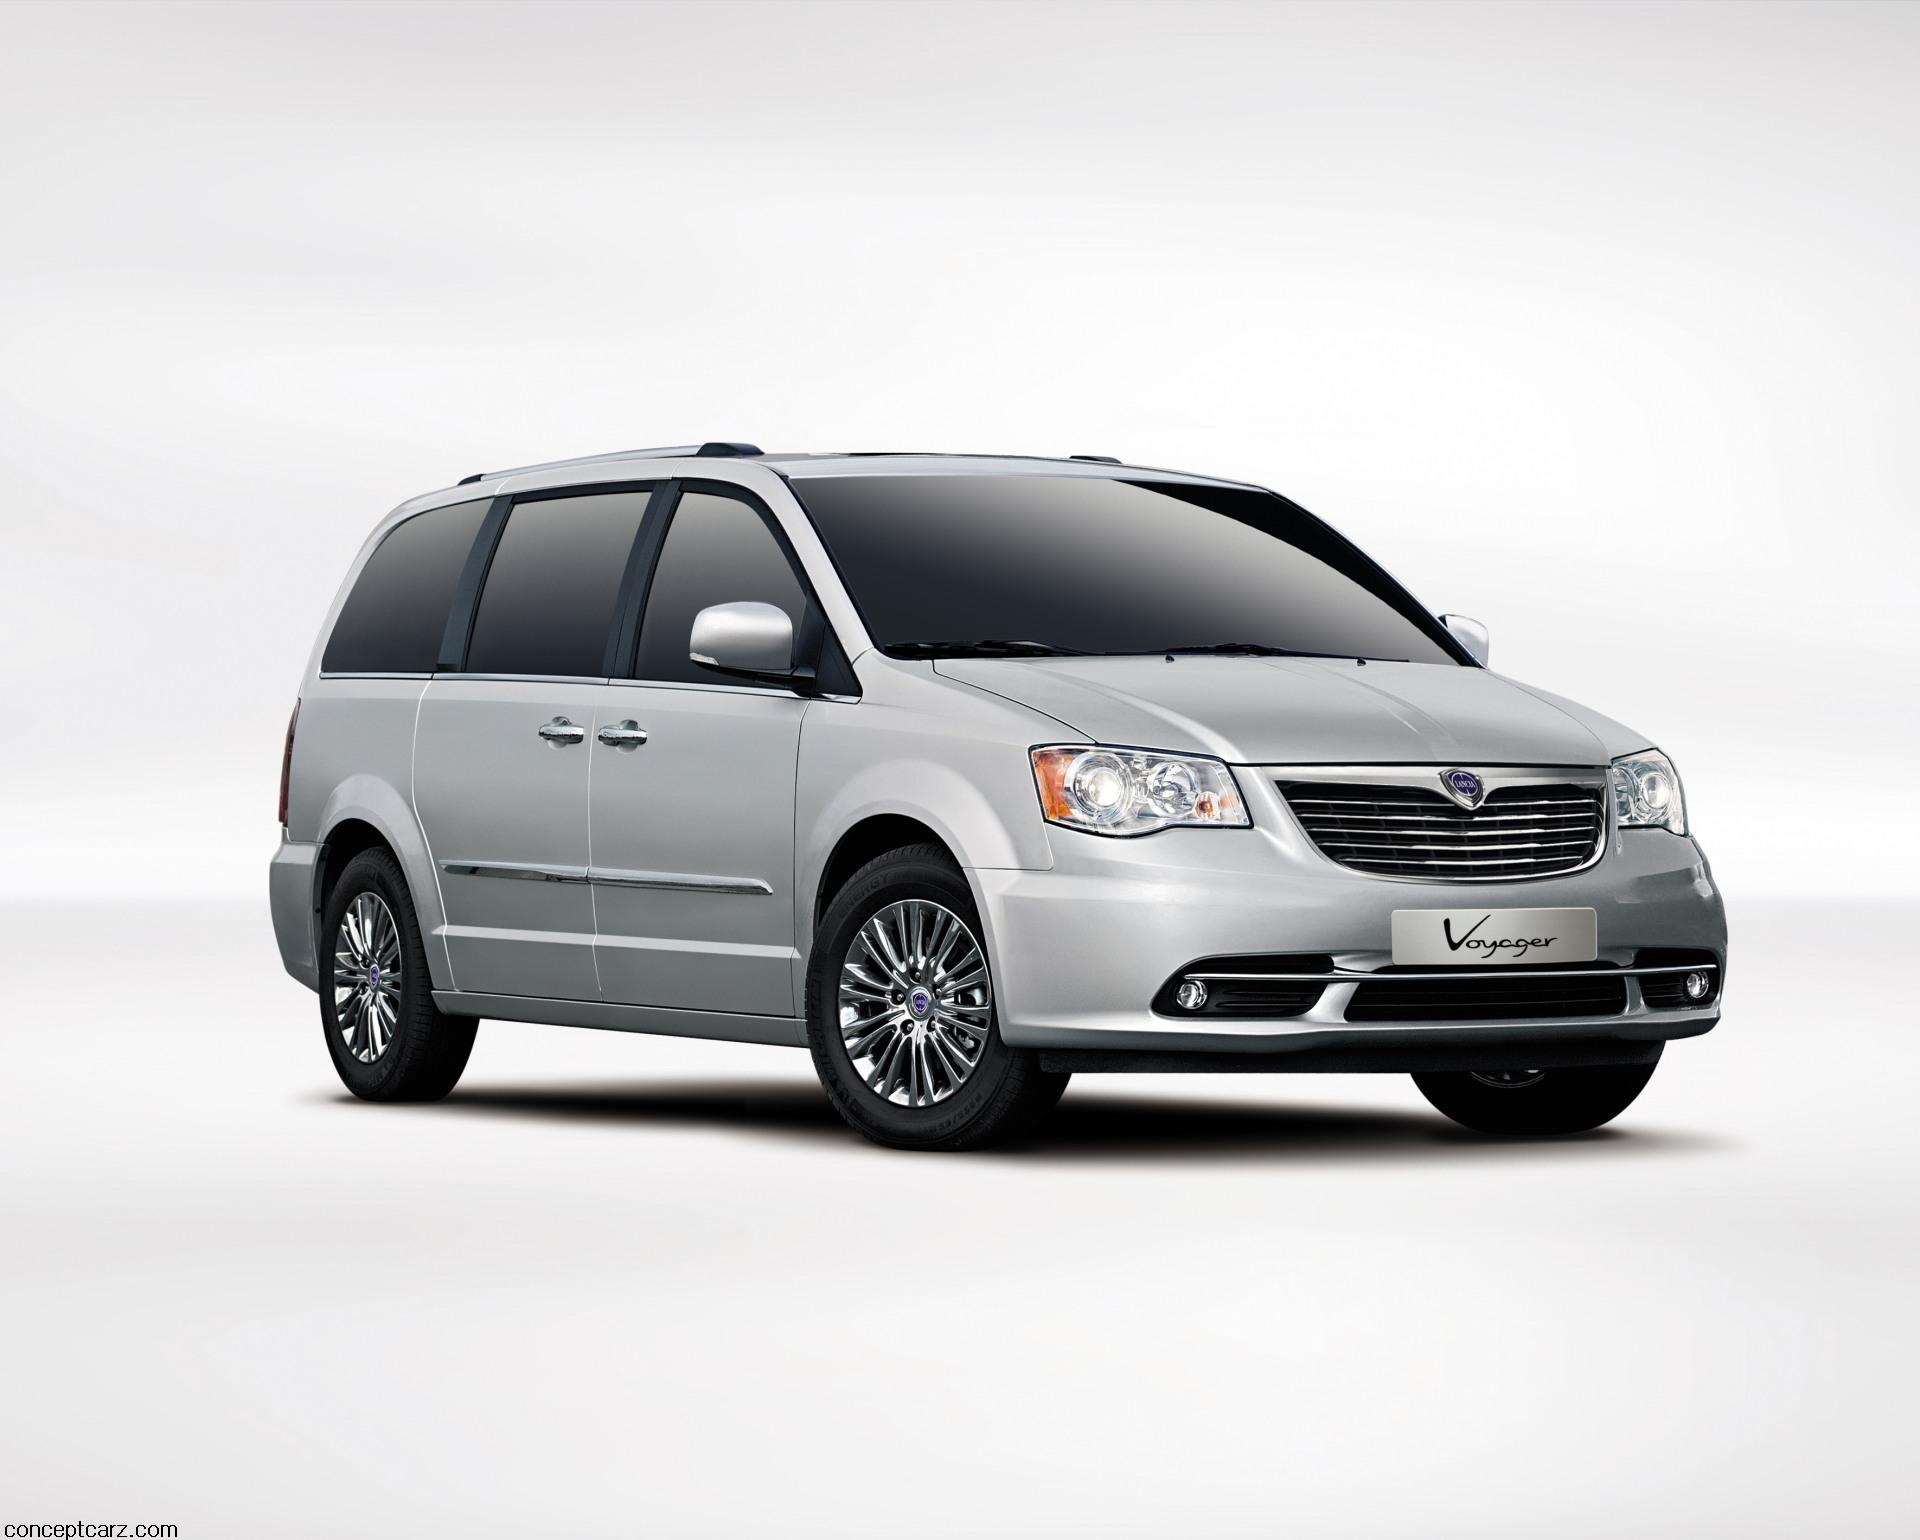 Lancia Grand Voyager pictures and wallpaper